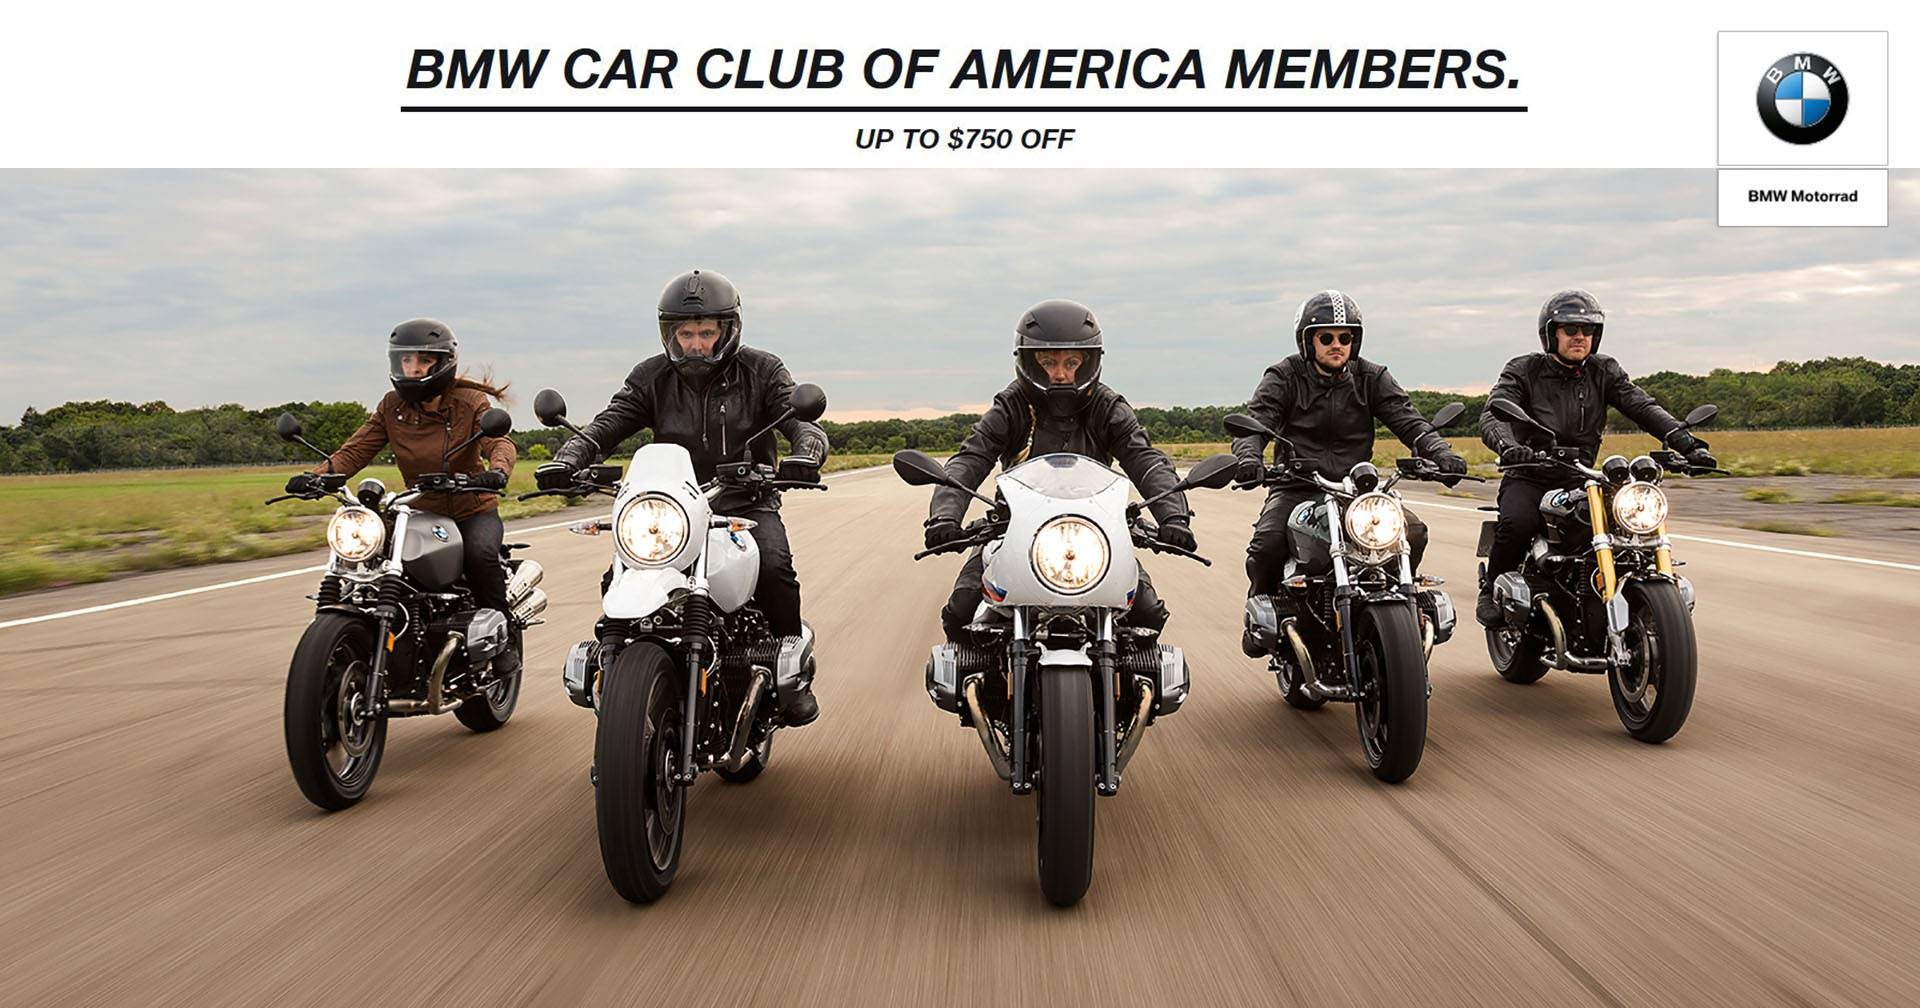 Quaker City Motor Sport Quaker City Motor Sport Is Located In